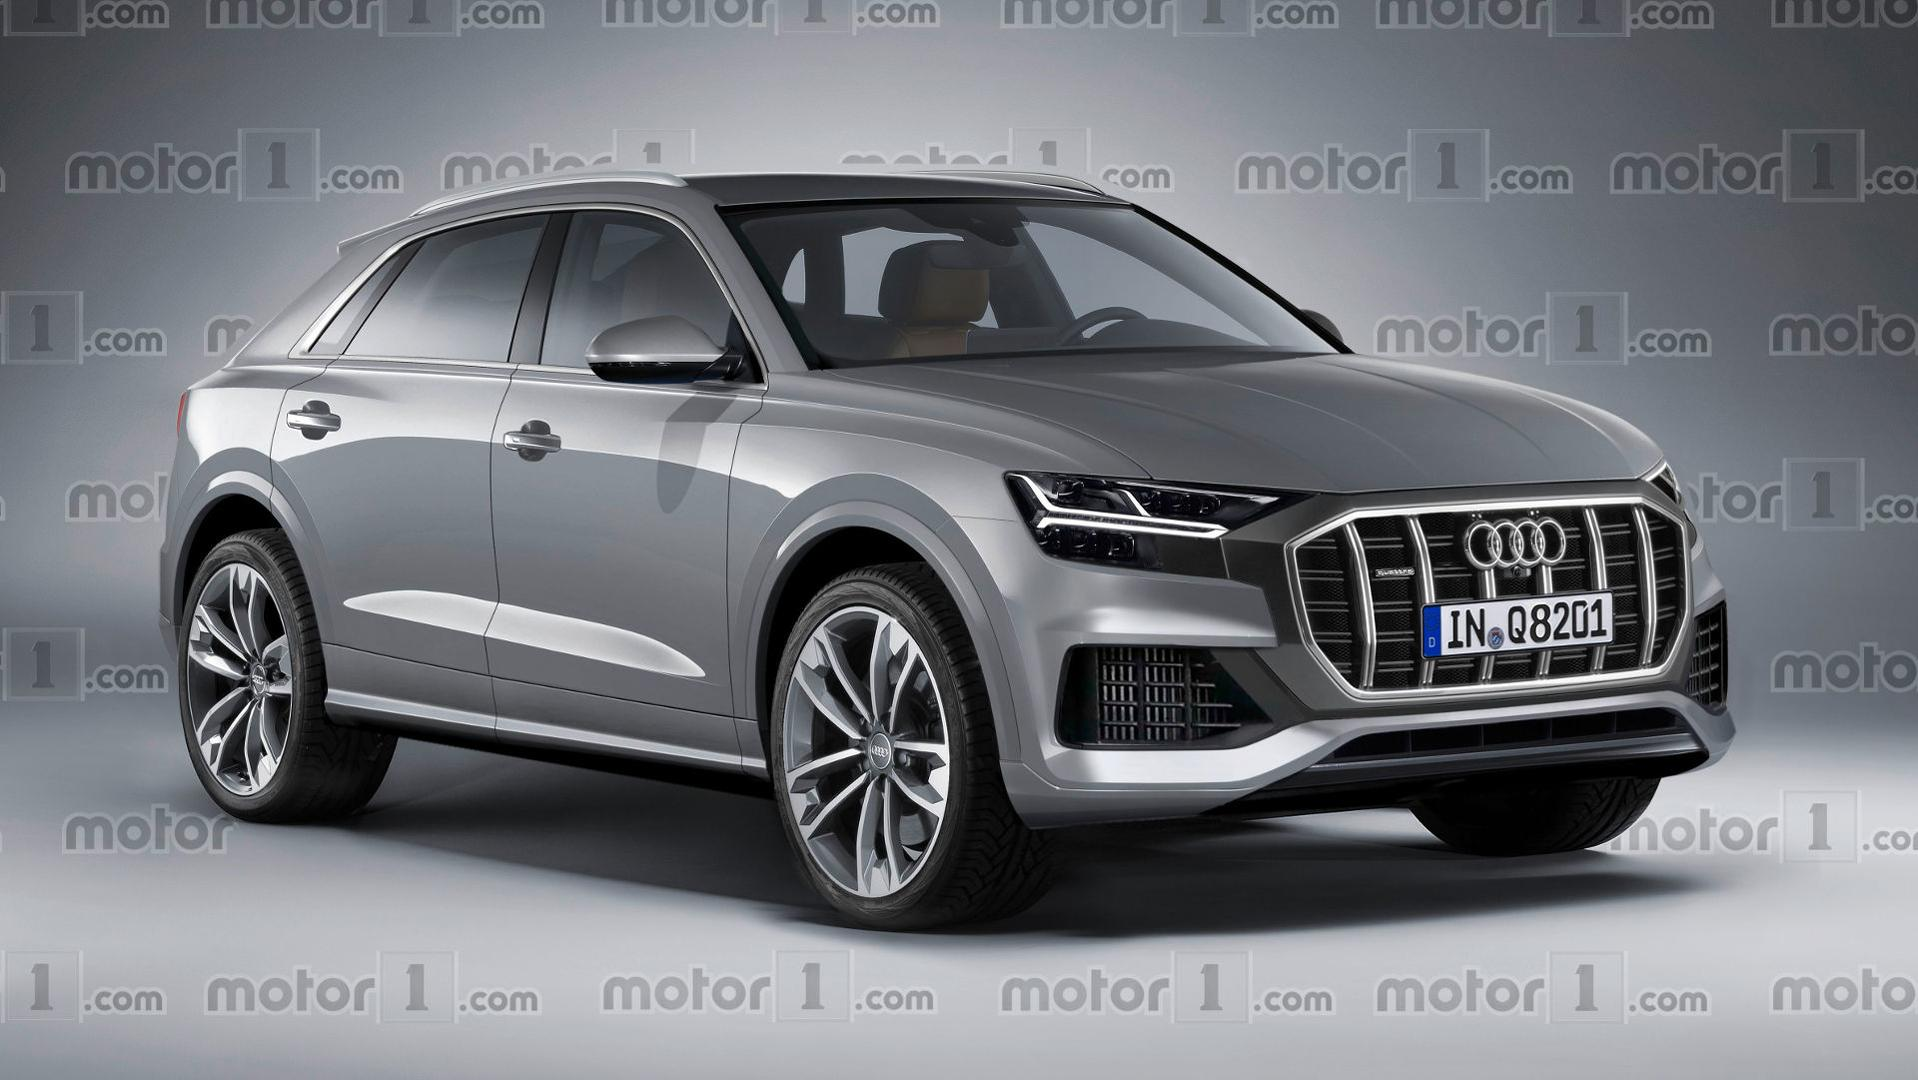 Audi Q8 Render Might Make You Reconsider SUV-Coupes